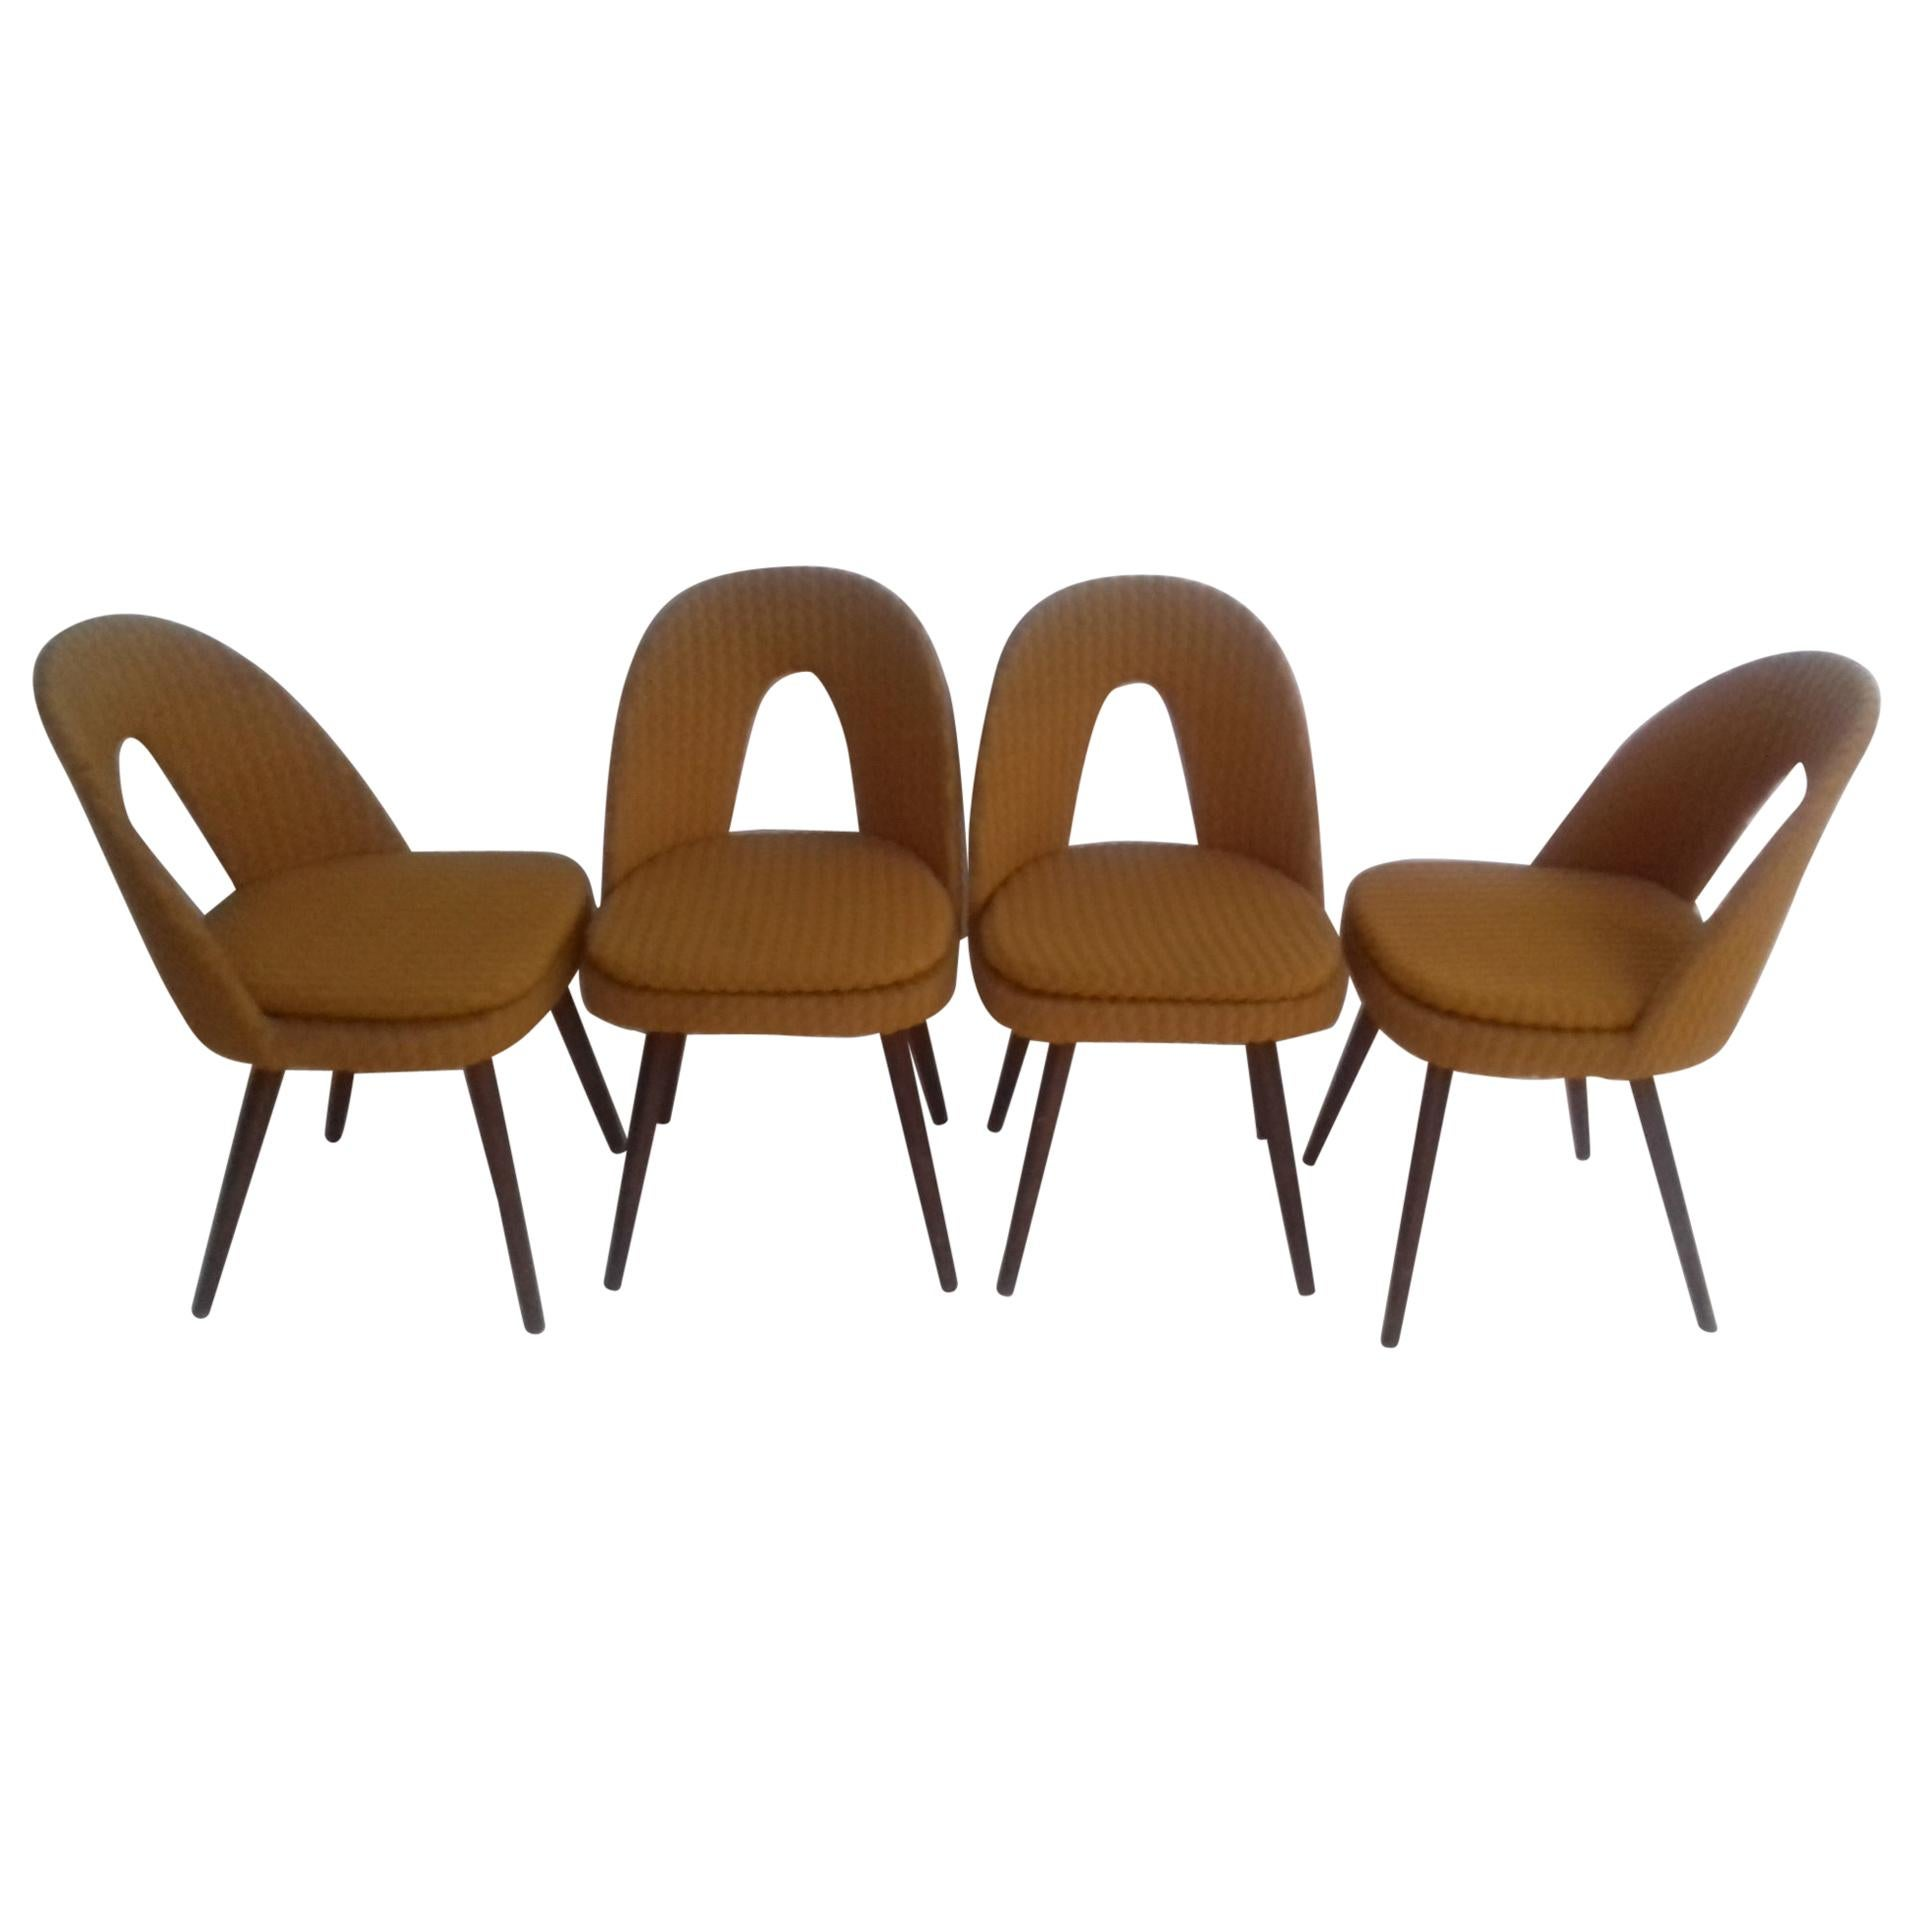 Set of Four Design Dining Chairs Designed by Antonín Šuman, 1960s